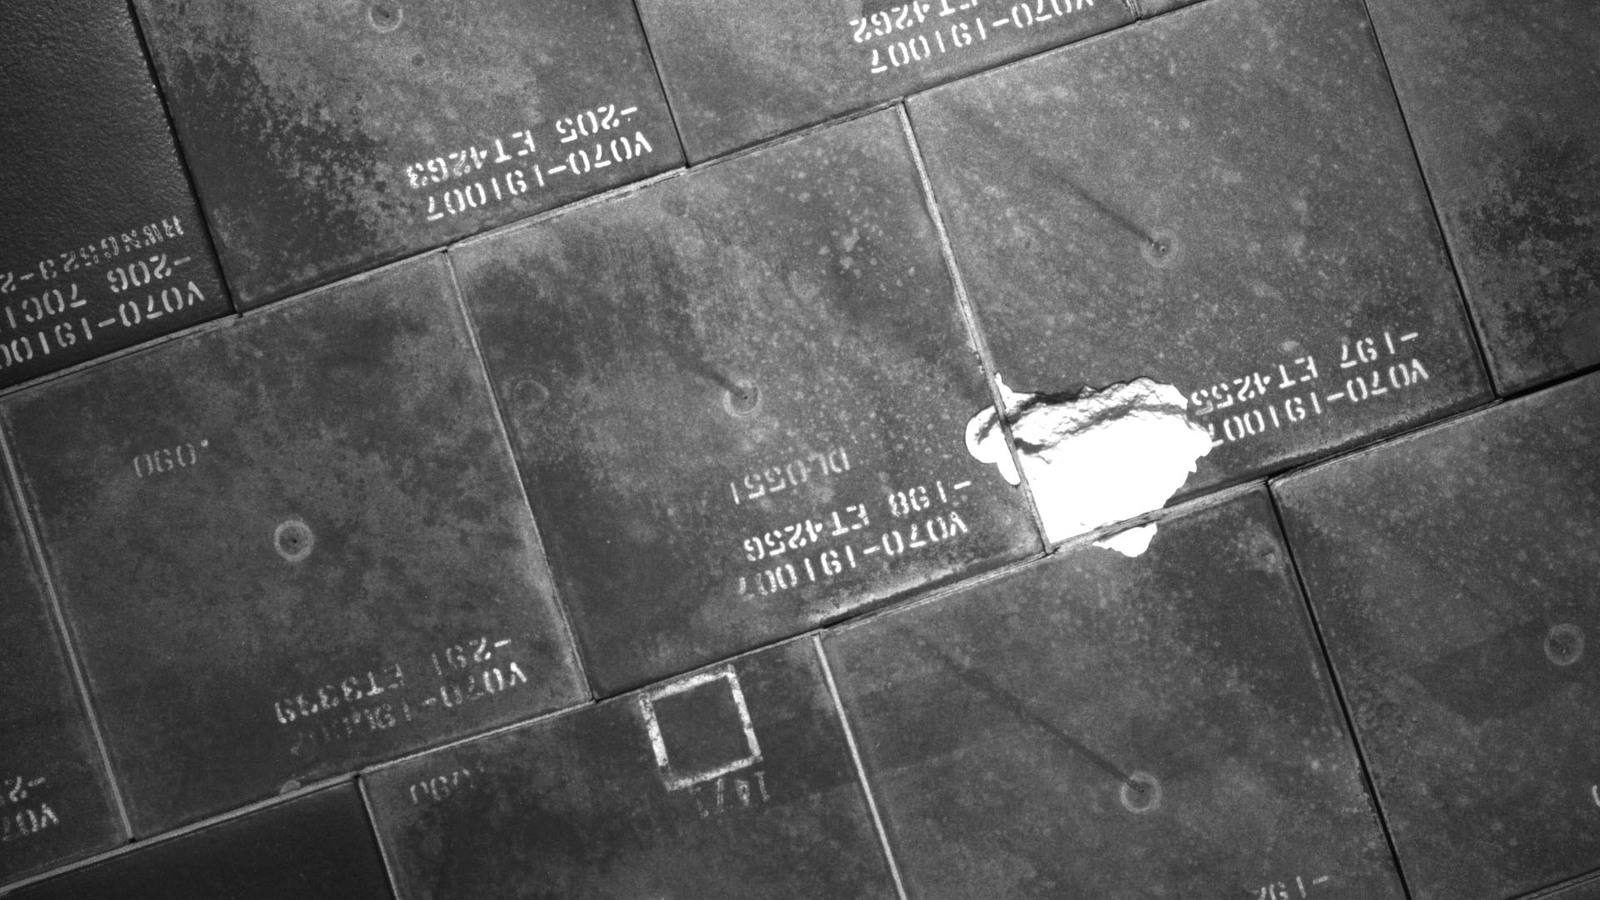 S134E007930 - STS-134 - STS-134 IDC Focused Inspection of TPS Tiles